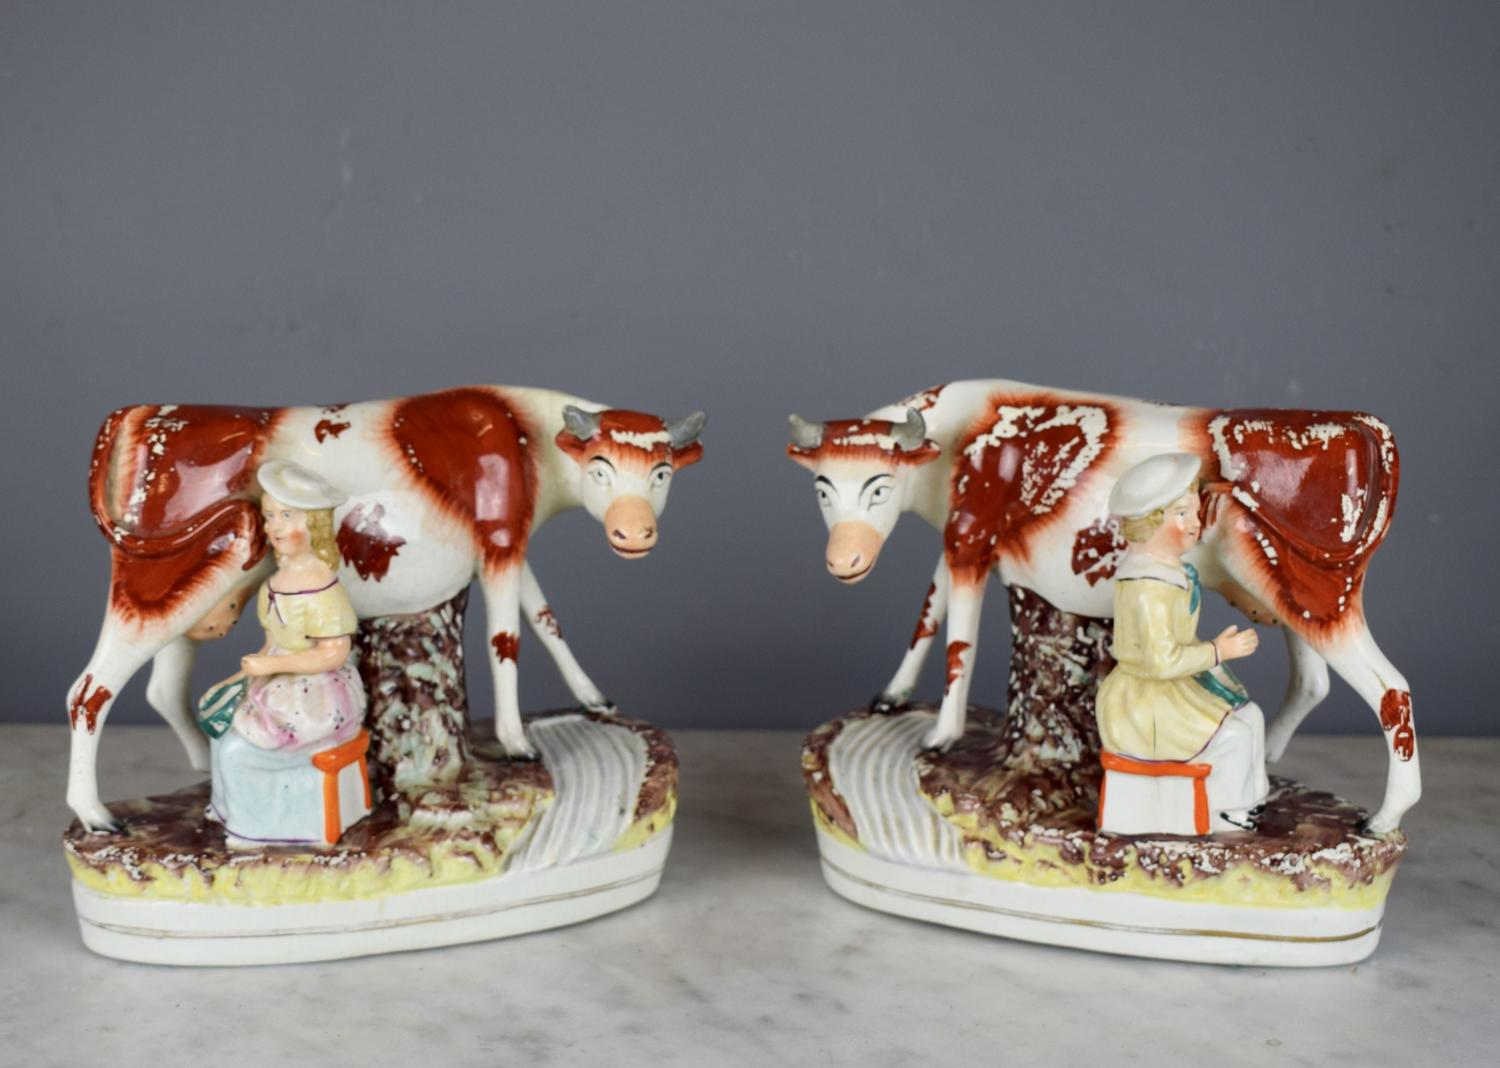 Victorian Staffodshire Pottery Cow and Milkmaid Figure Groups